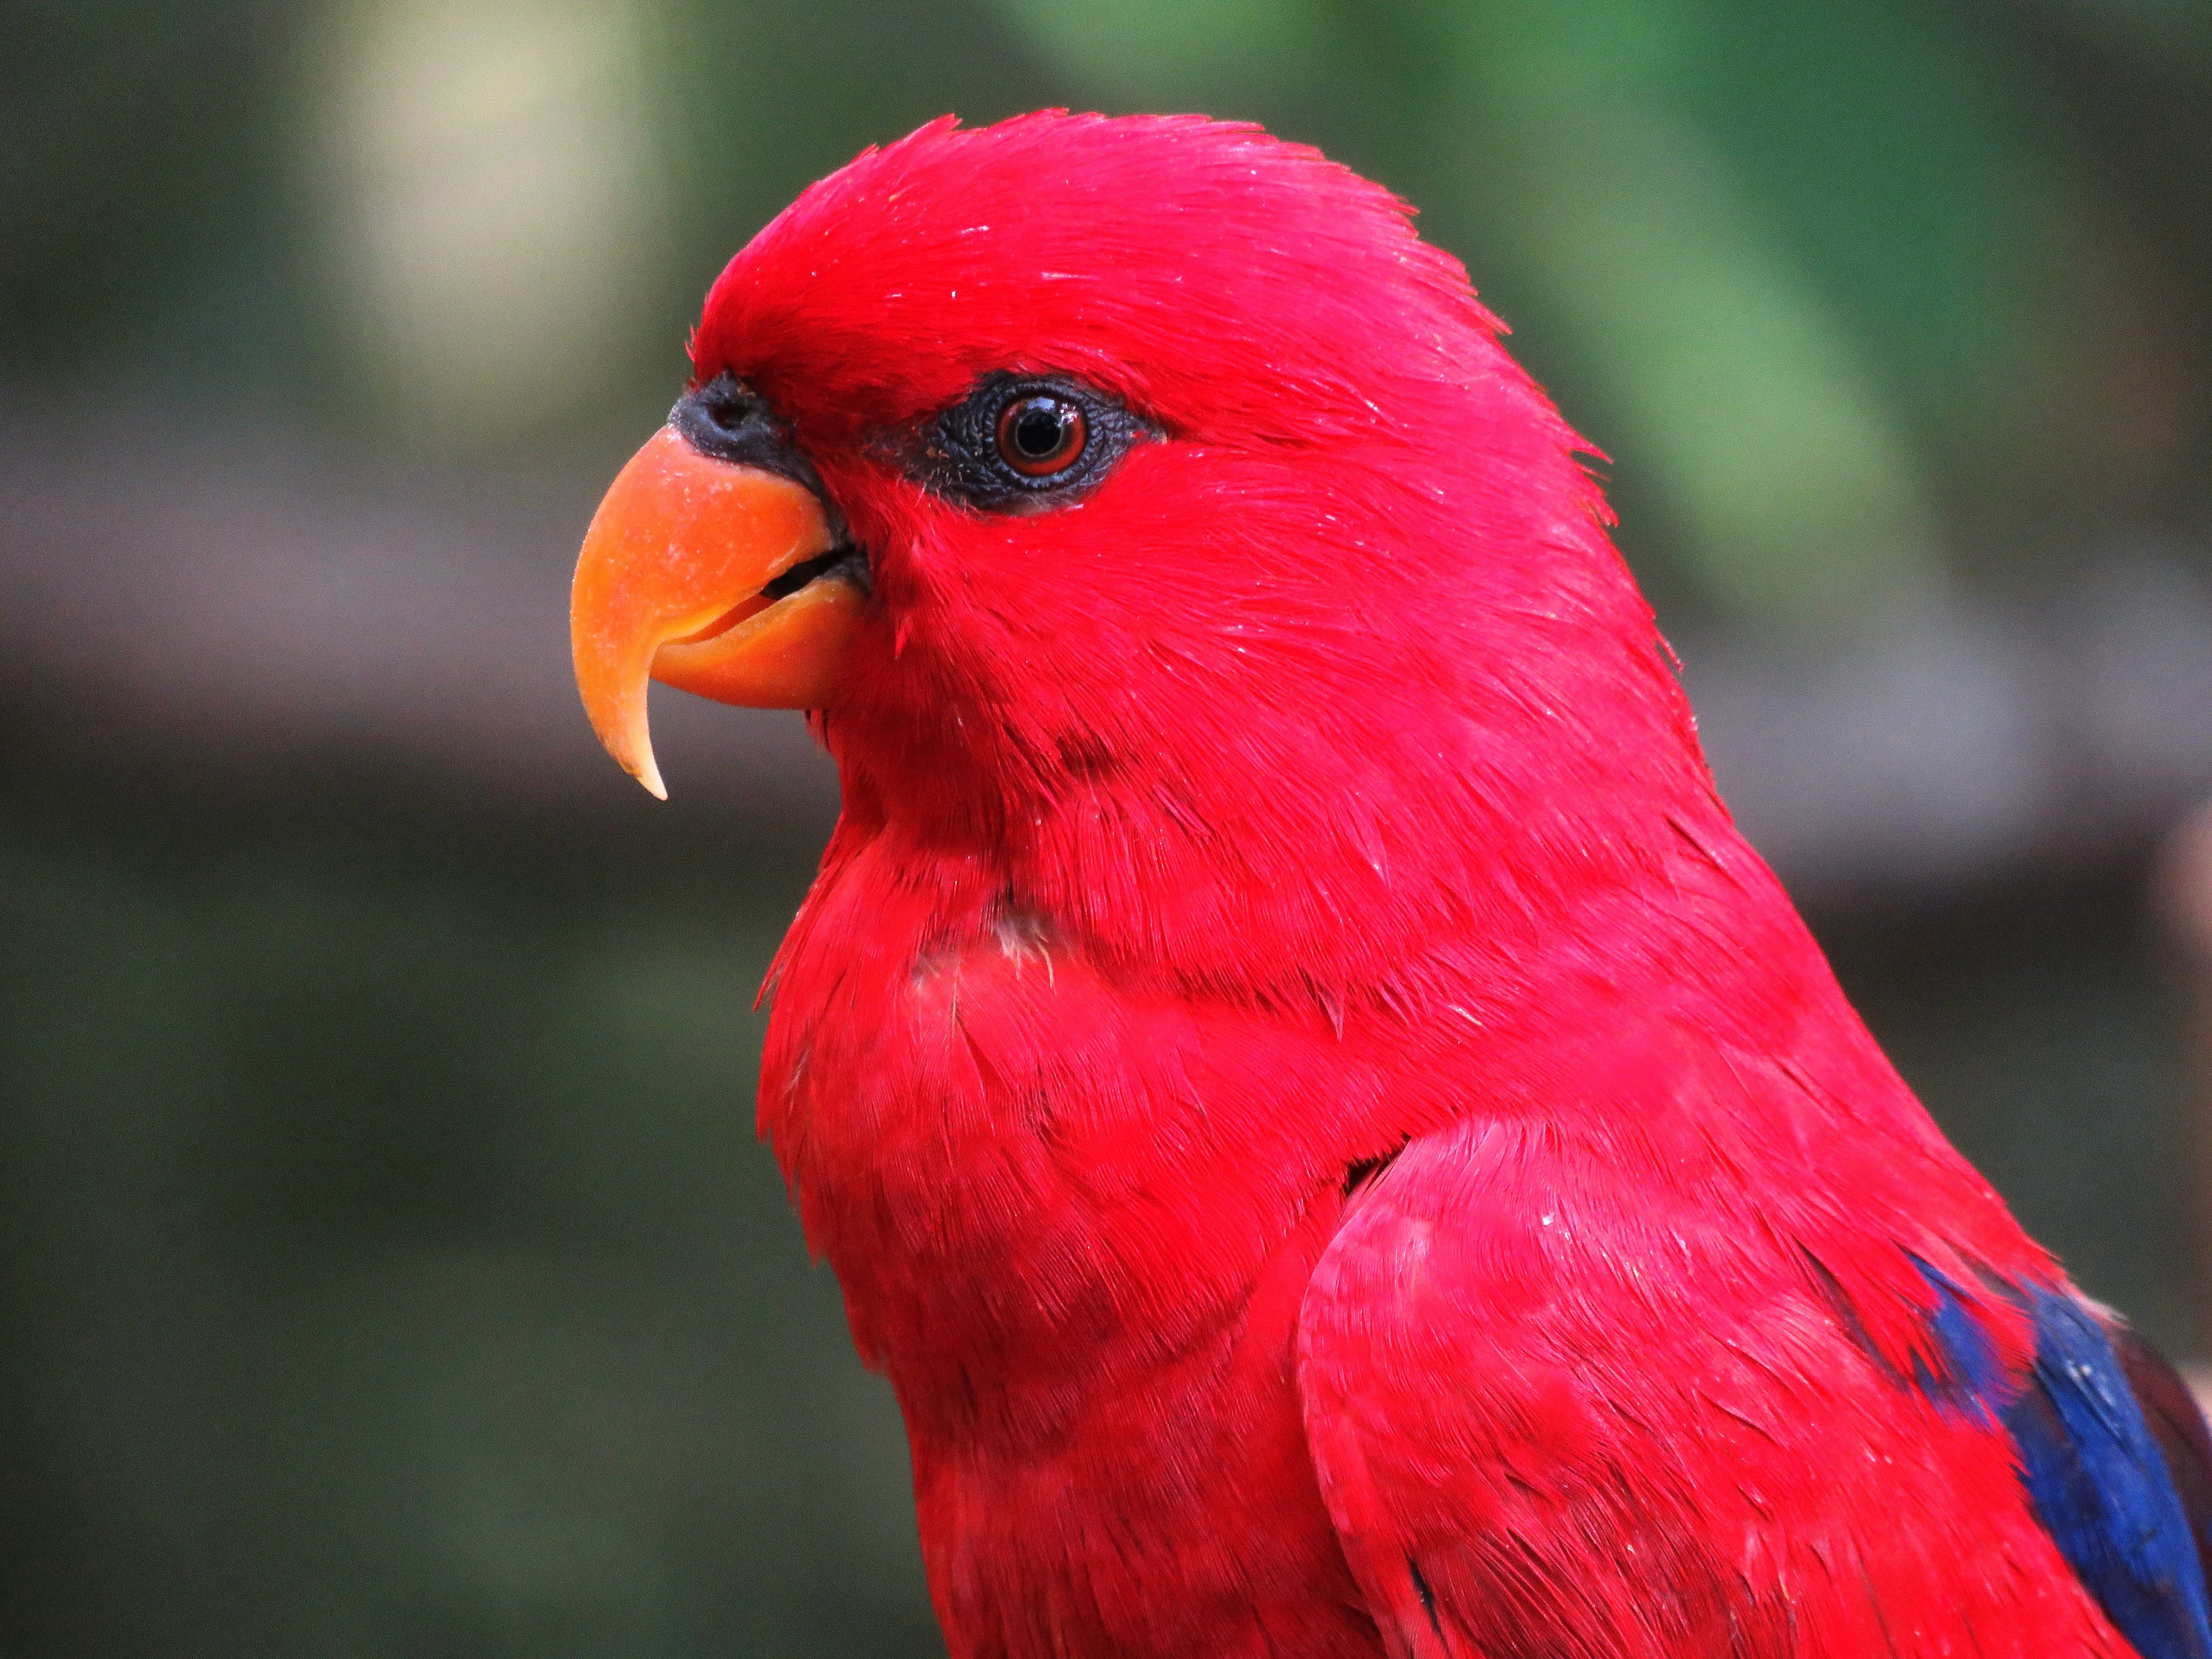 Red and Pink Parrot image - Free stock photo - Public ...